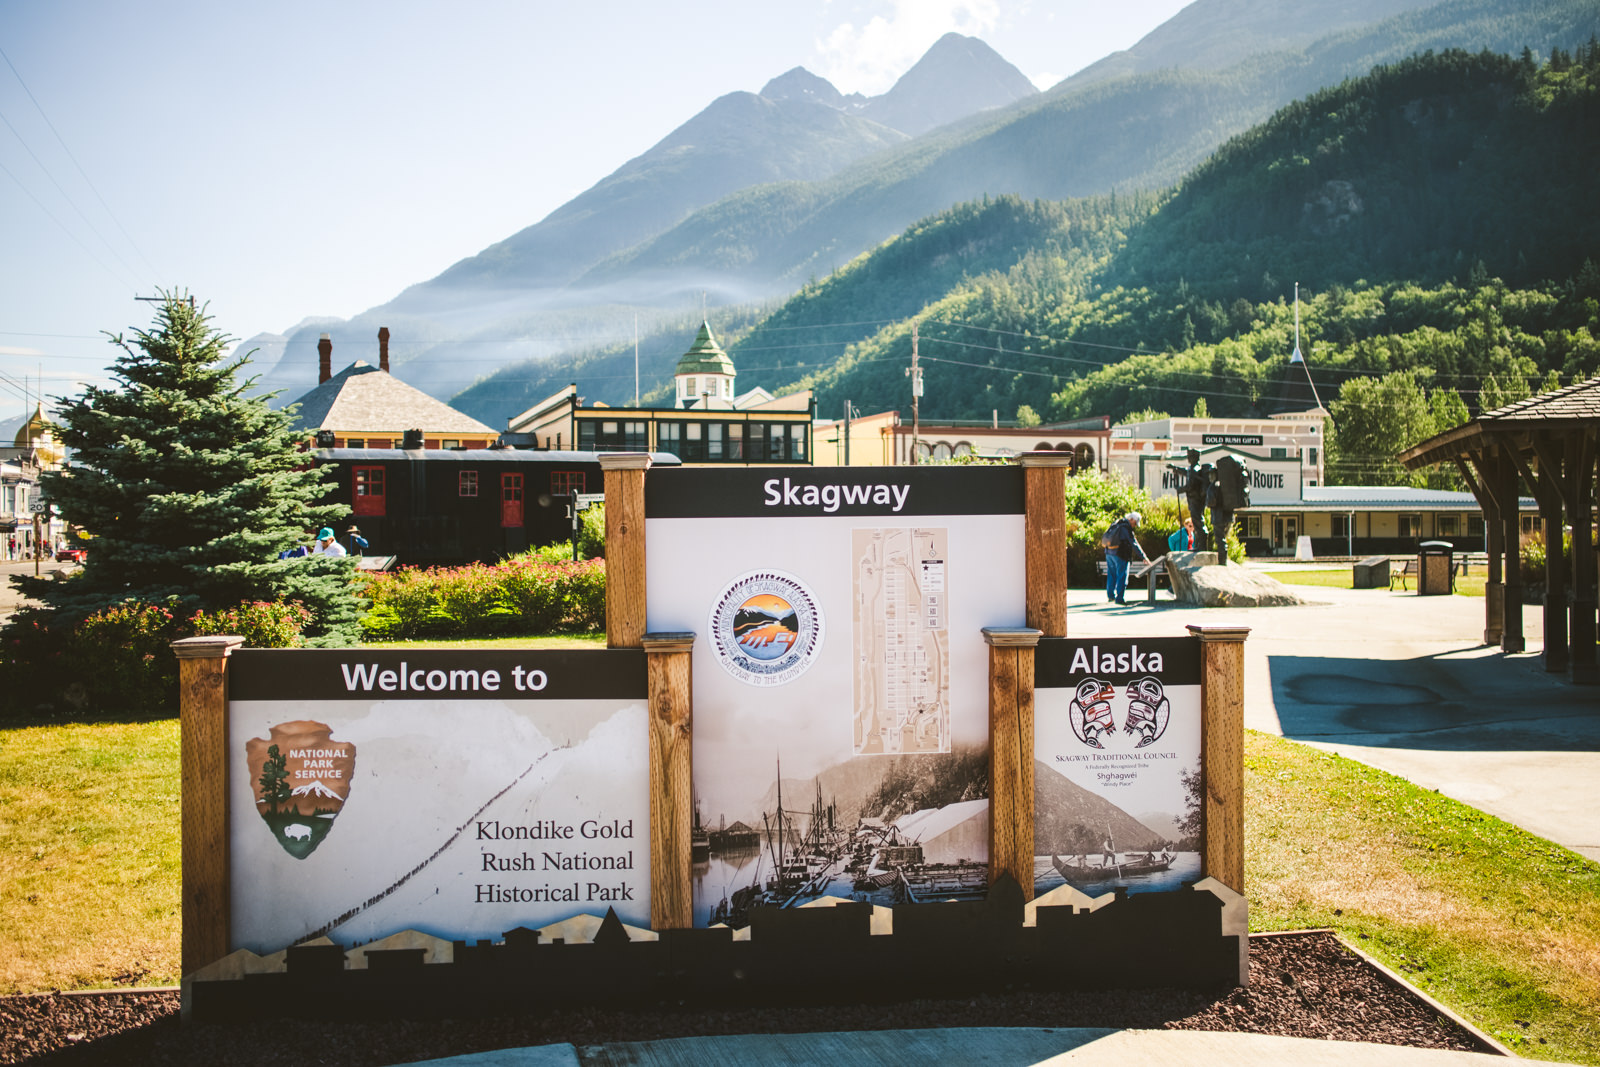 Skagway's klondlike gold rush national historical park in alaska